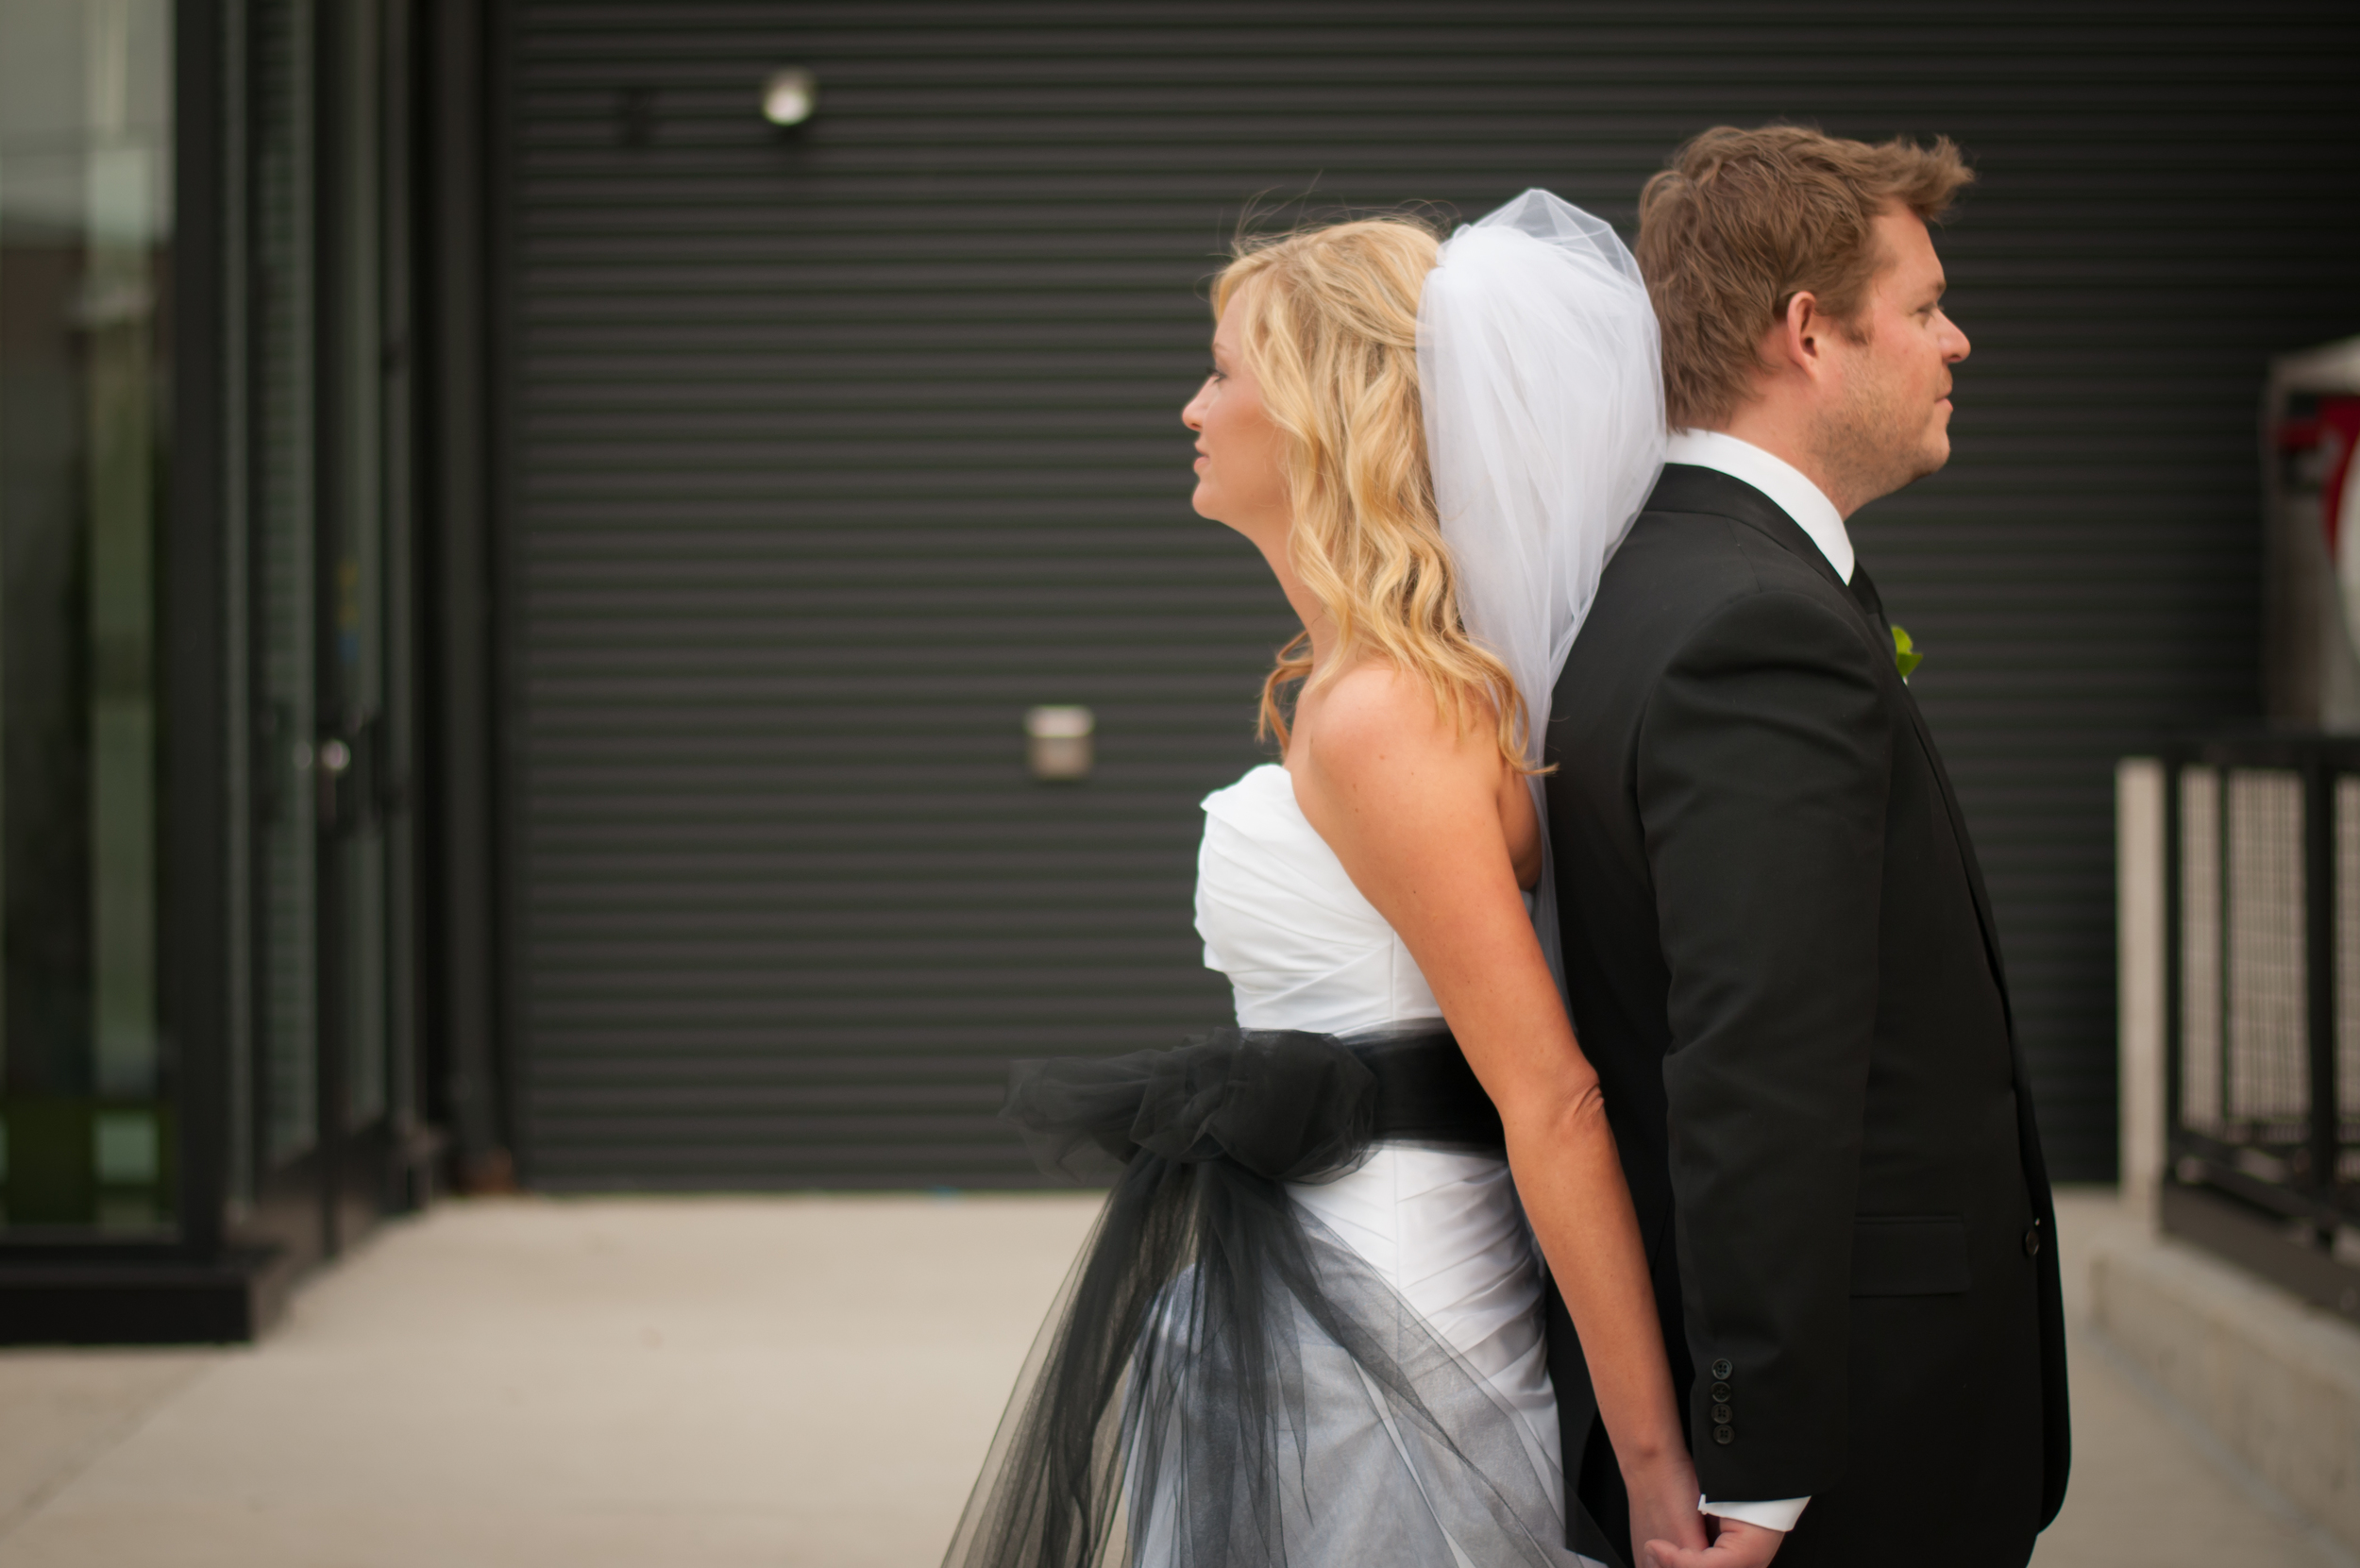 meredith donnelly photography-68.jpg